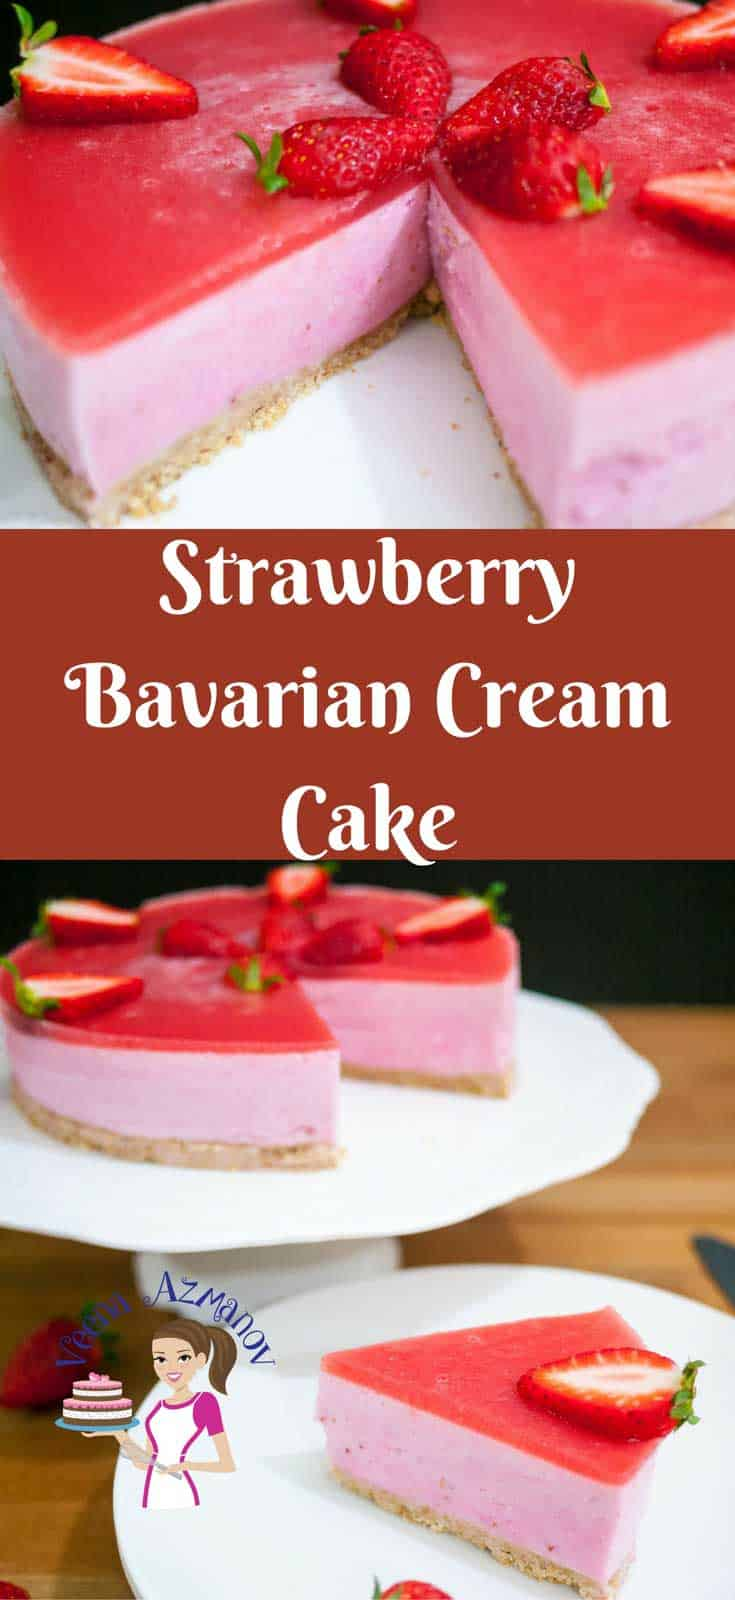 Strawberry Bavarian Cream Cake is a perfect entertaining dessert very impressive & luxurious. Made with creamy strawberry vanilla pastry that feels like velvet on the tongue. A few extra step in the making but your guest will be truly impressed.